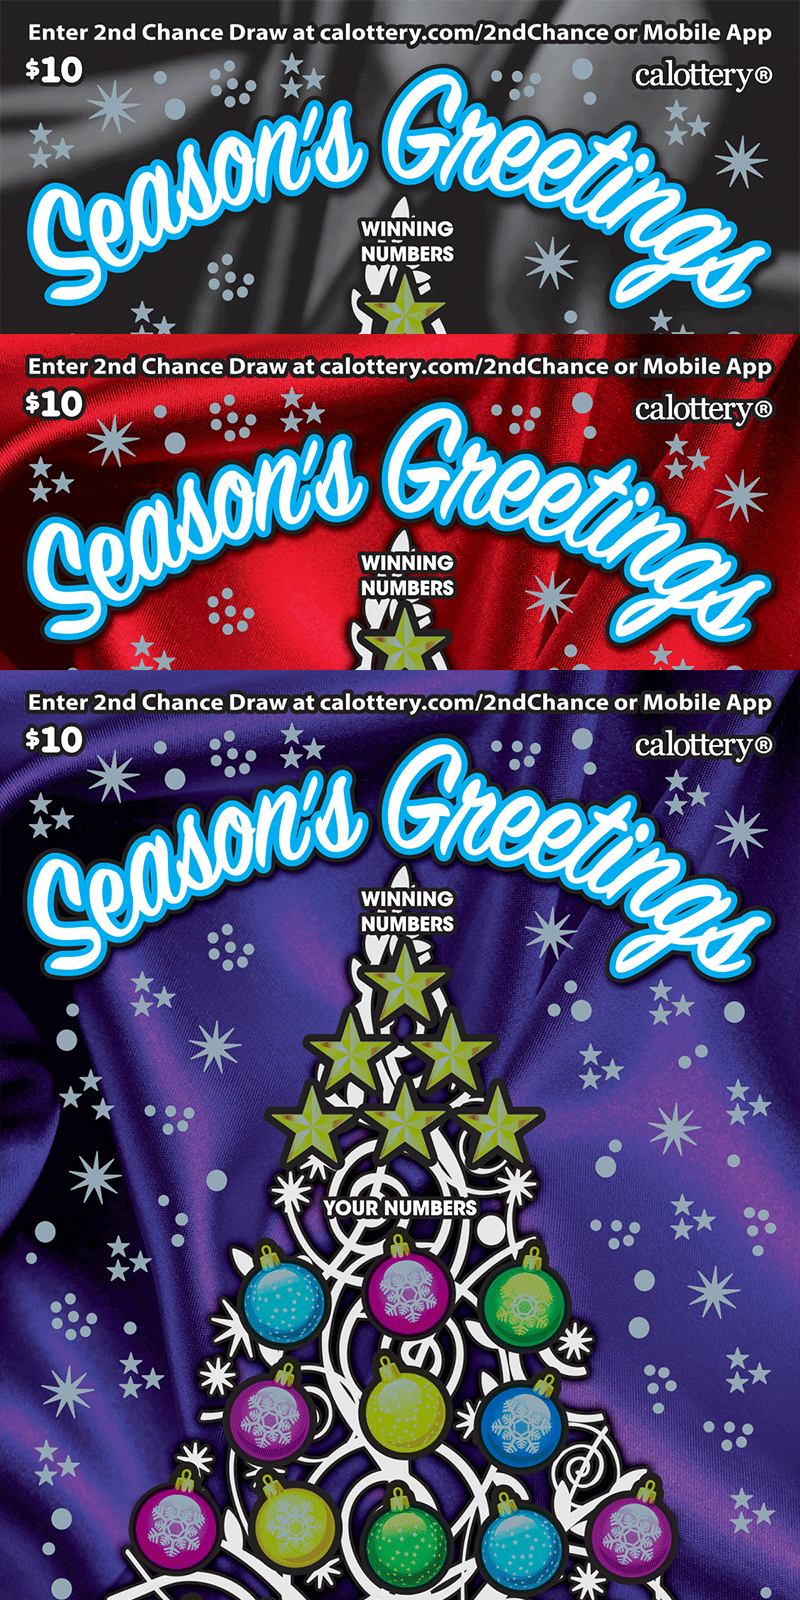 $10 Season's Greetings unscratched ticket